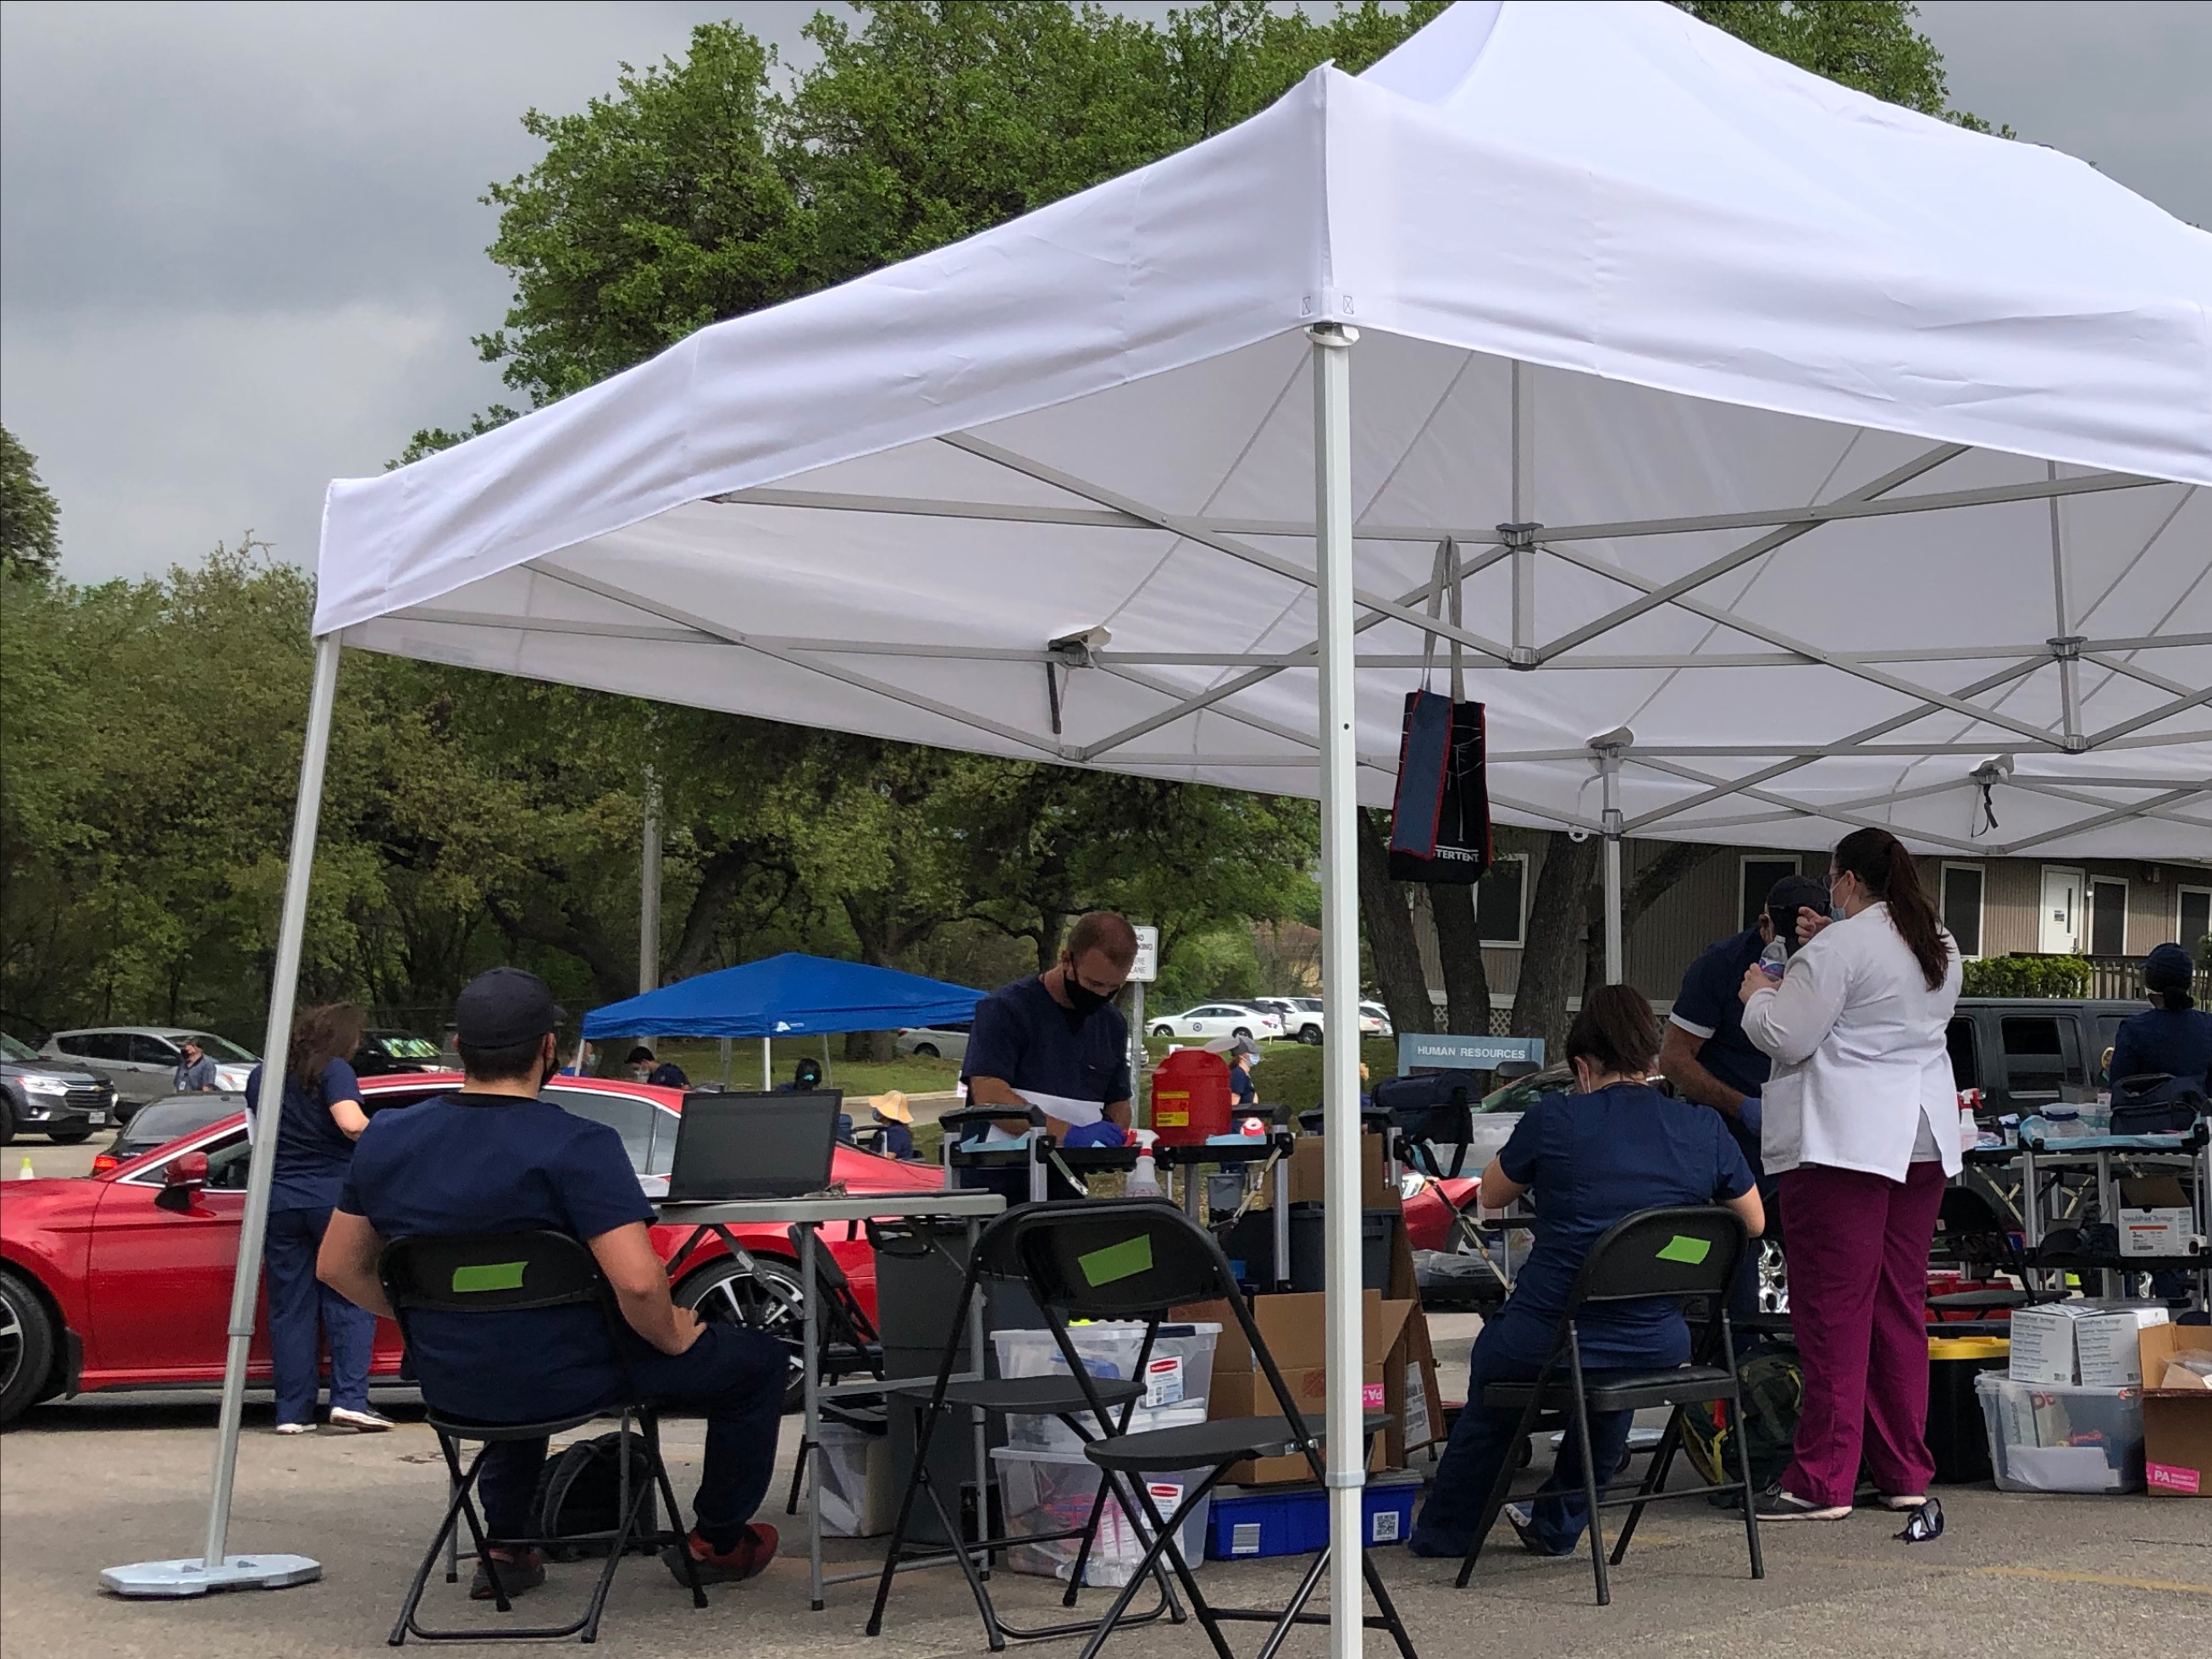 Tarrytown Pharmacy staff and volunteers work under a large, white tent.